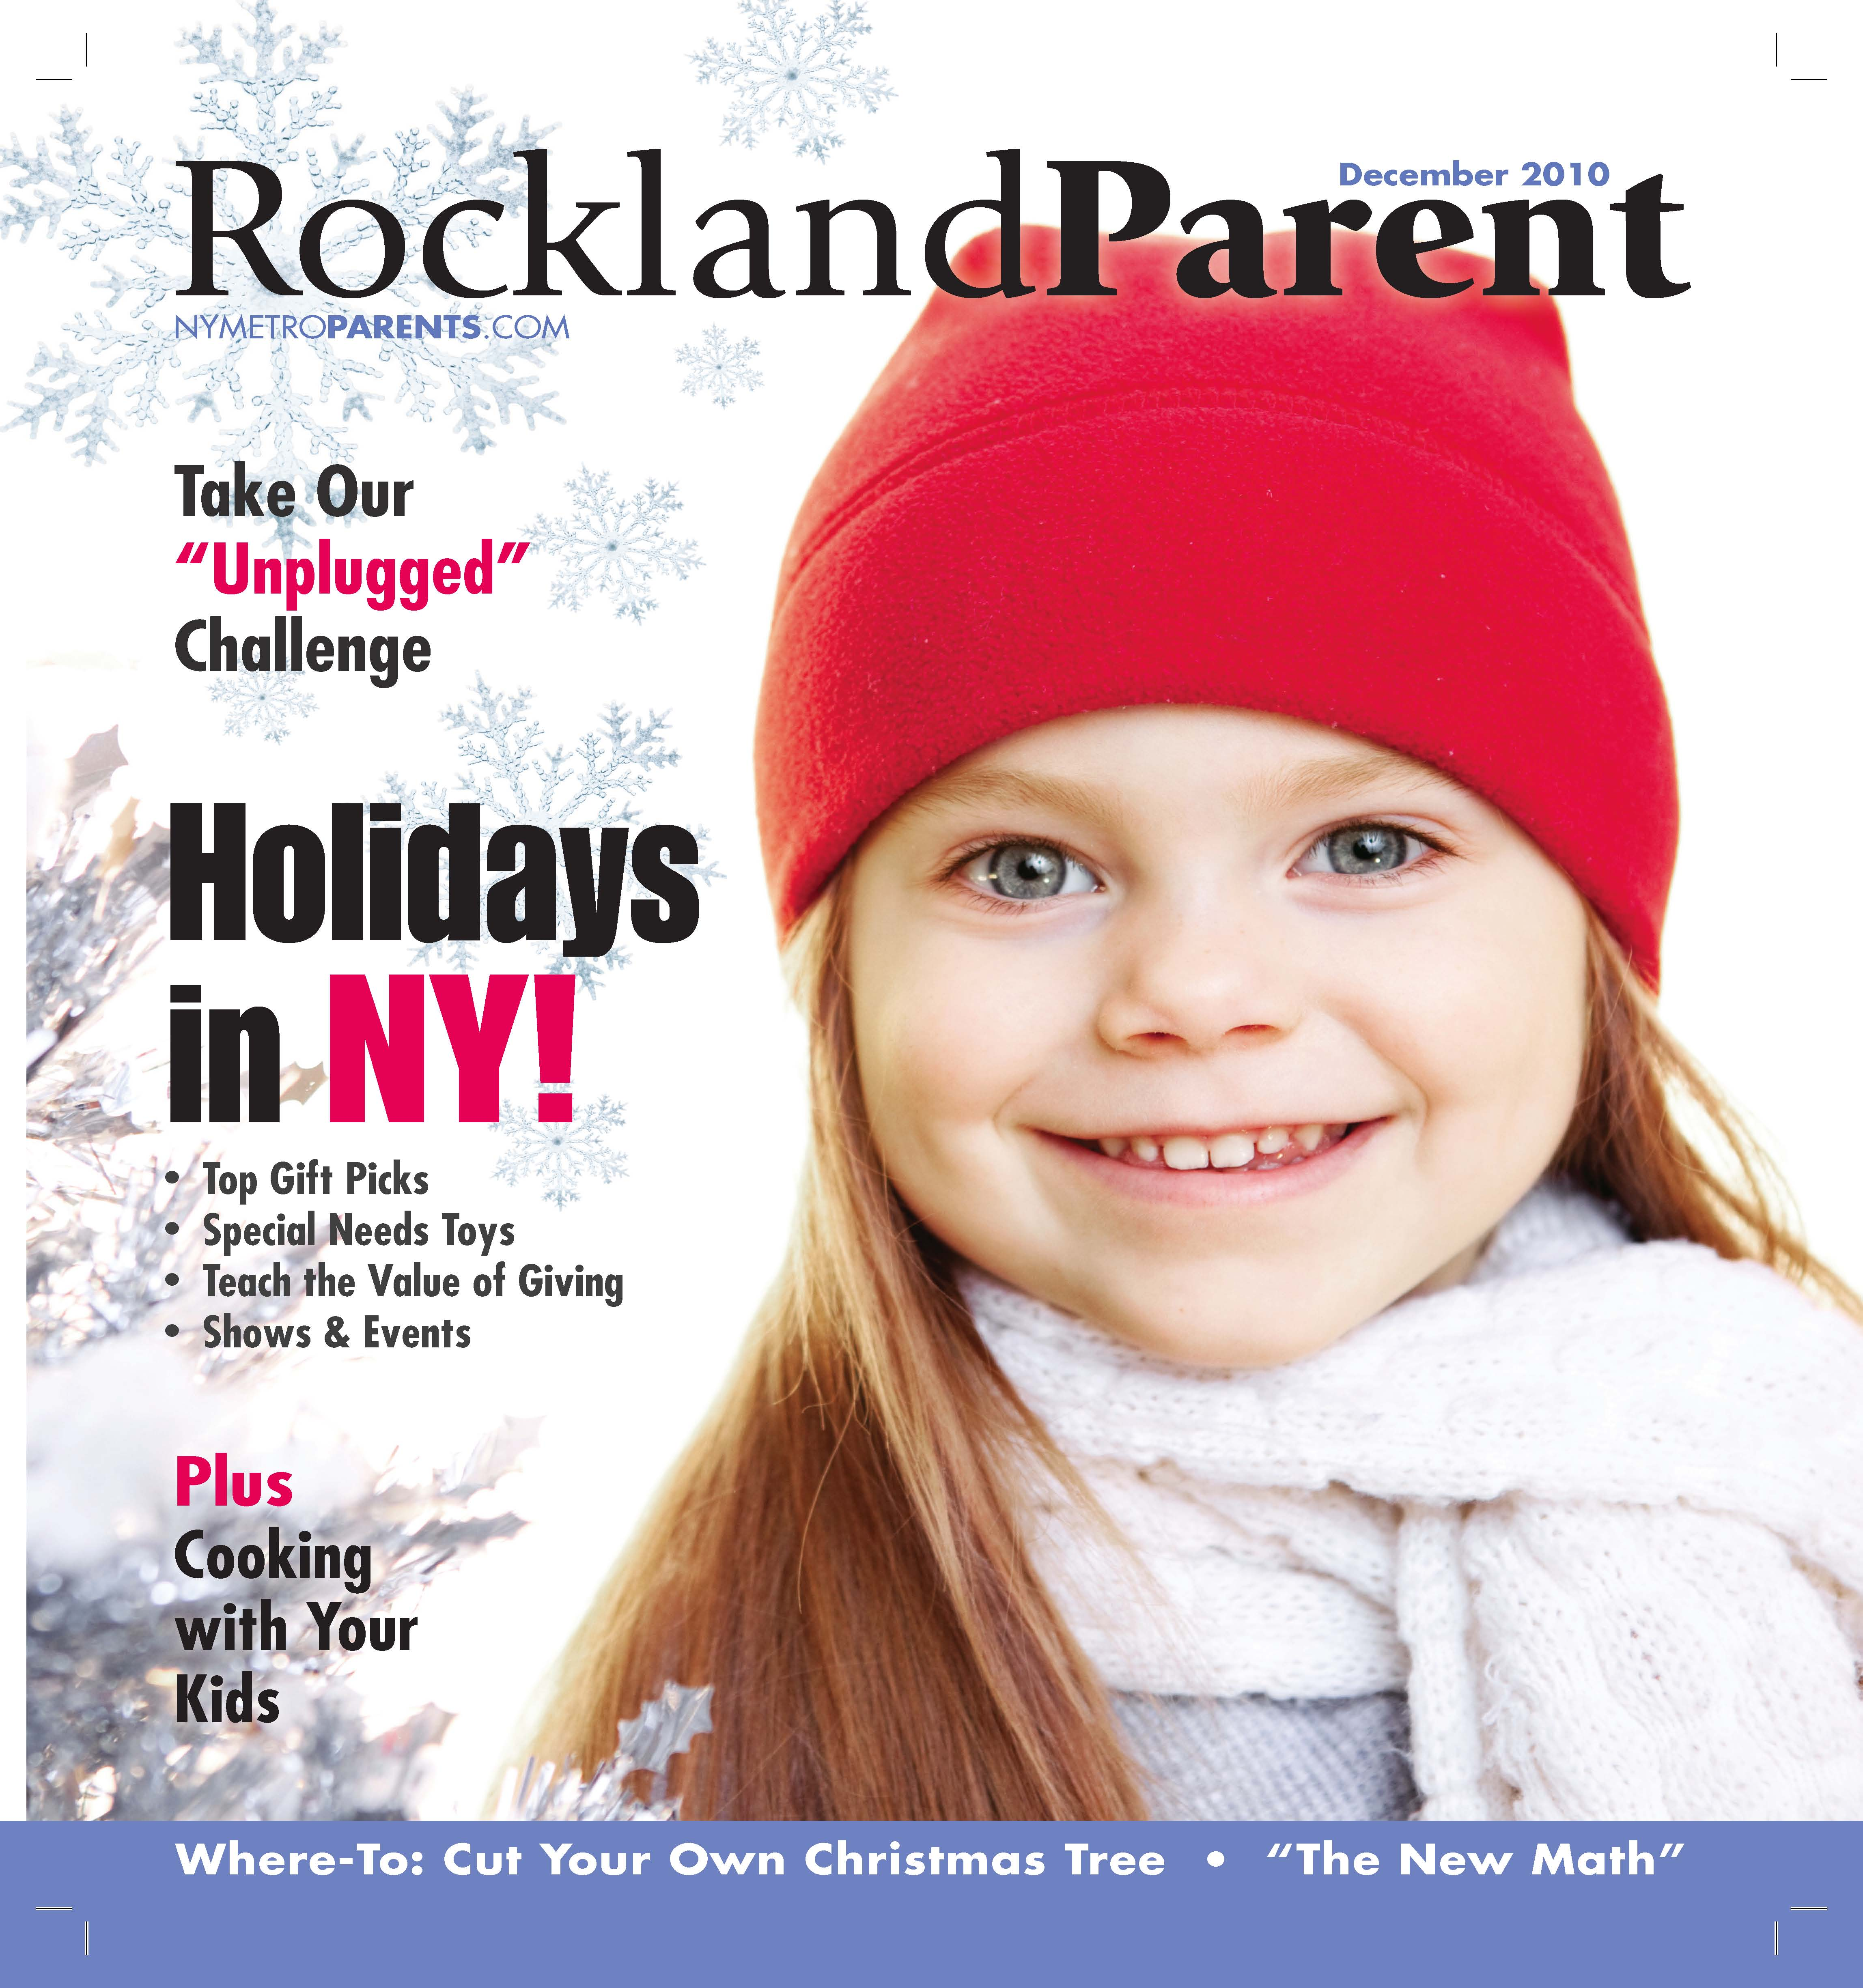 Rockland Parent magazine, january 2011 cover